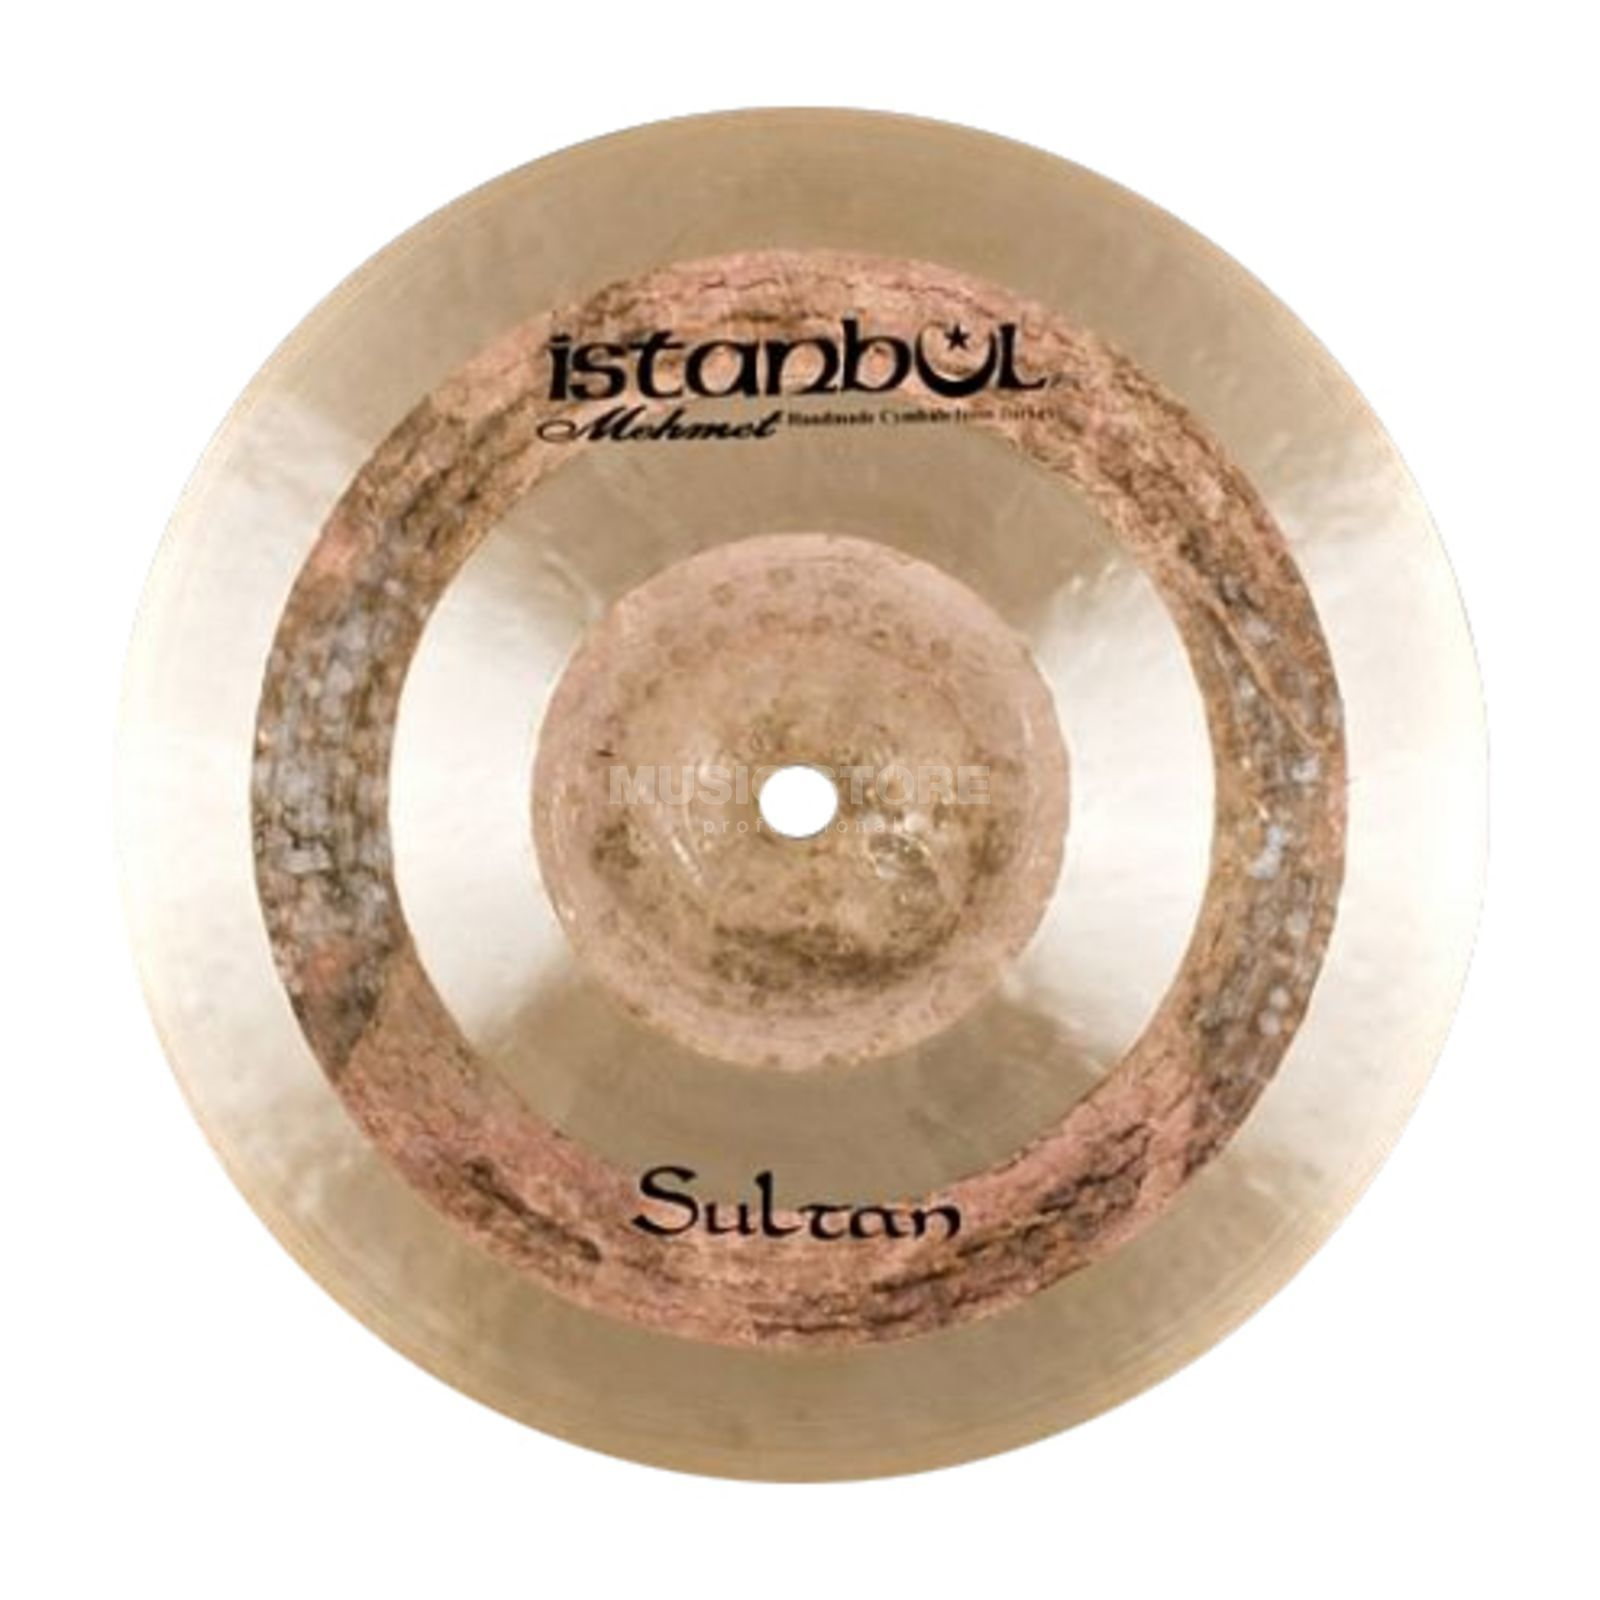 "Istanbul Sultan Splash 12"", SPS12 Productafbeelding"